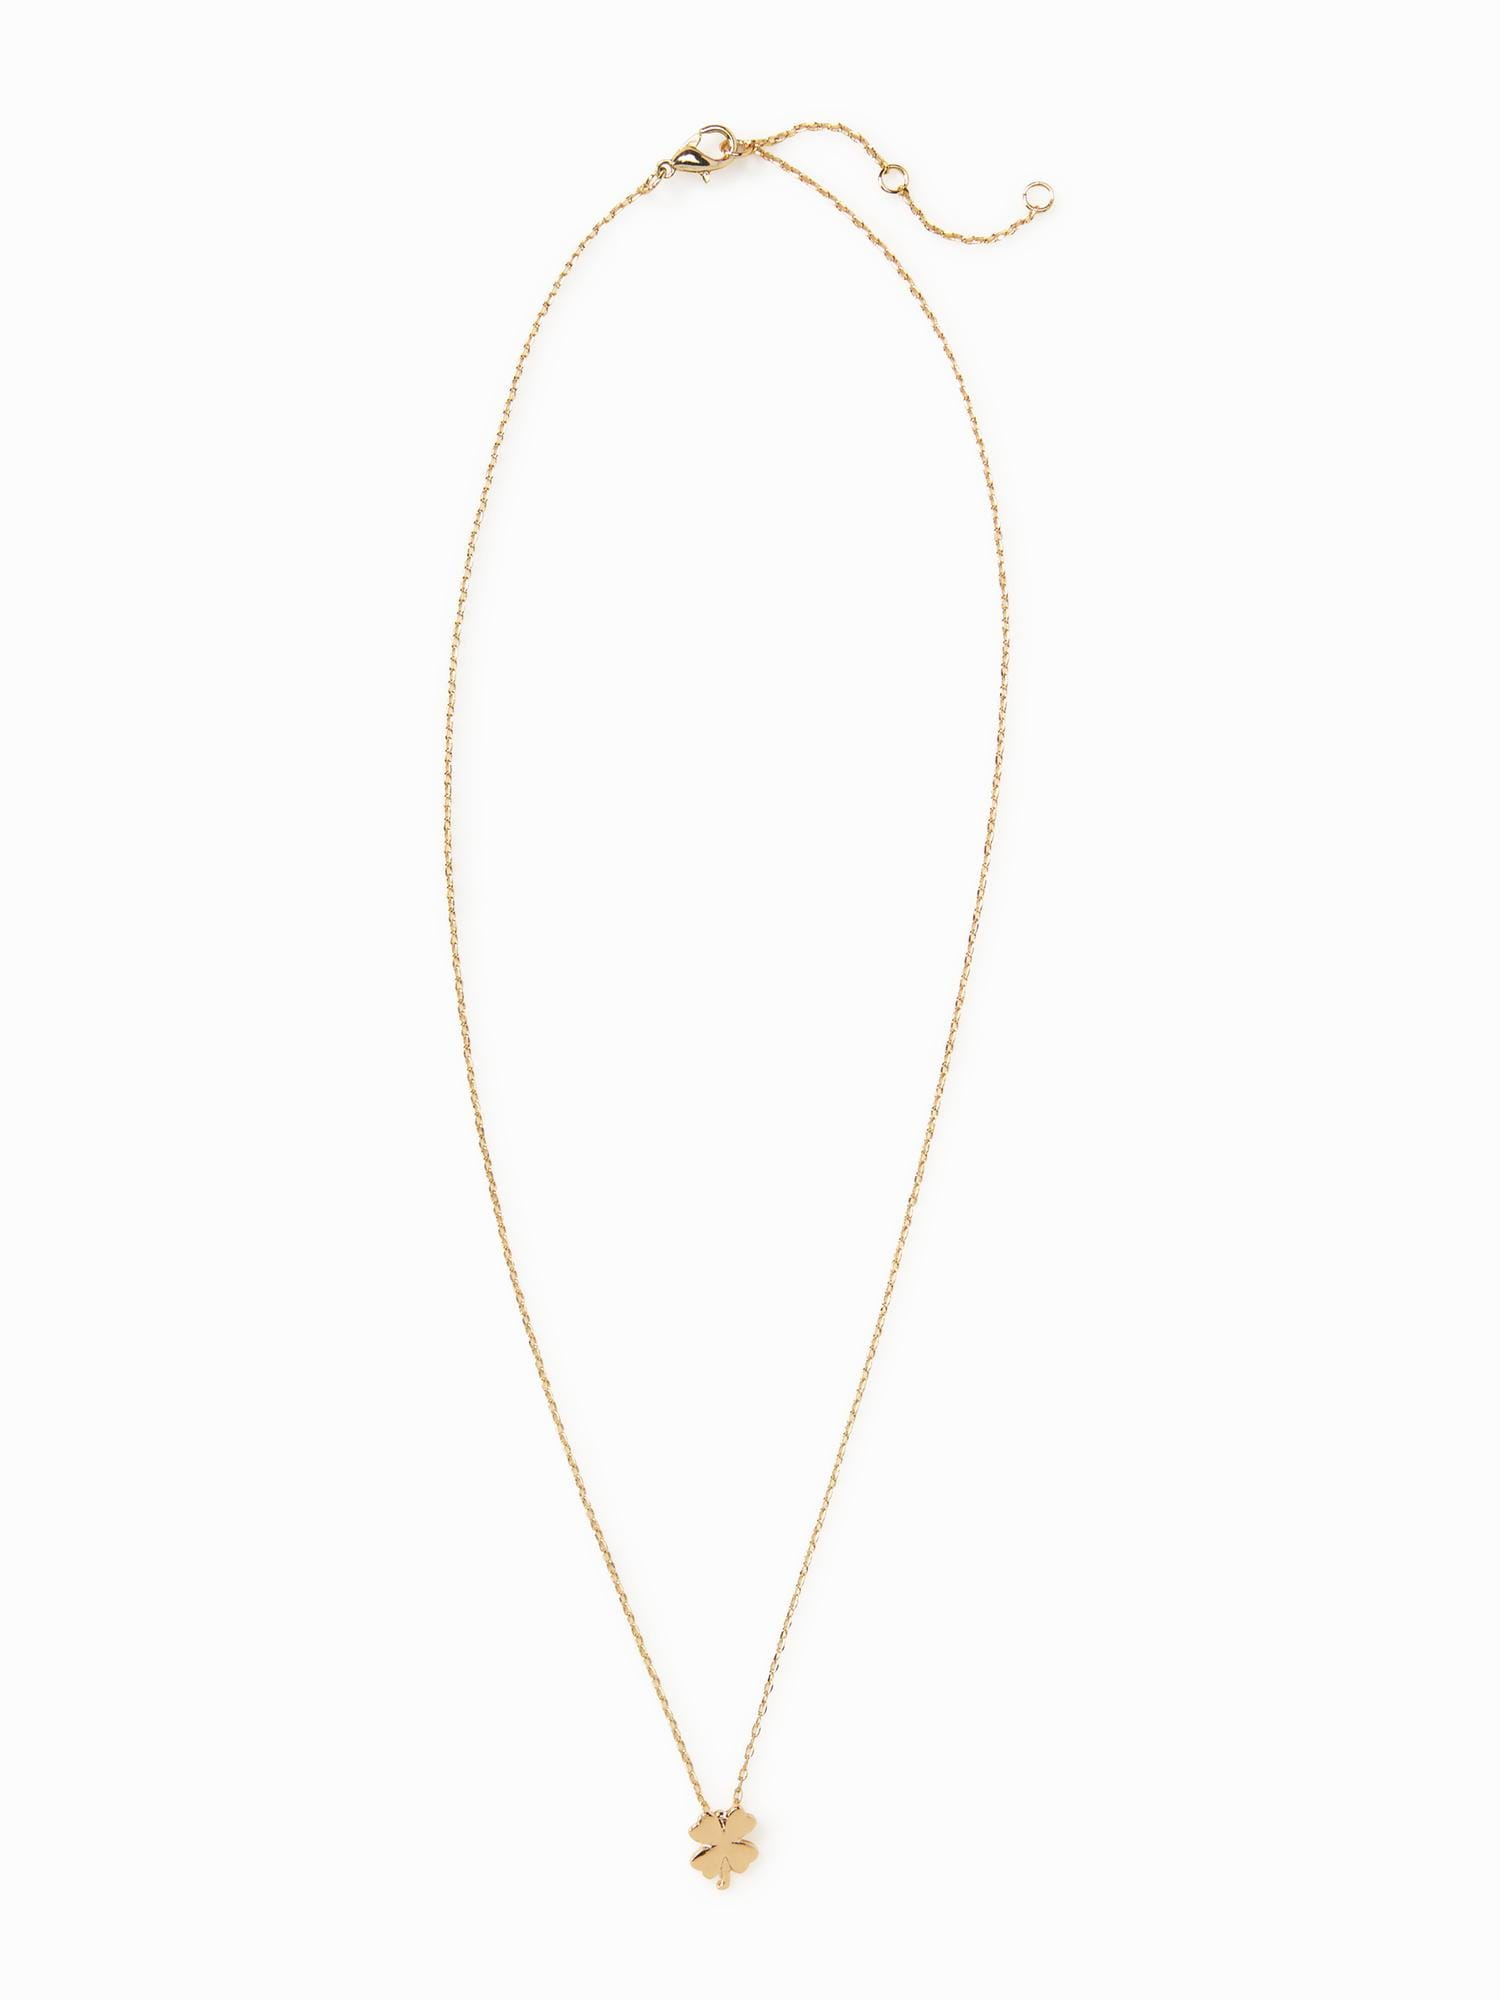 Clover pendant necklace for women old navy clover pendant necklace for women aloadofball Choice Image